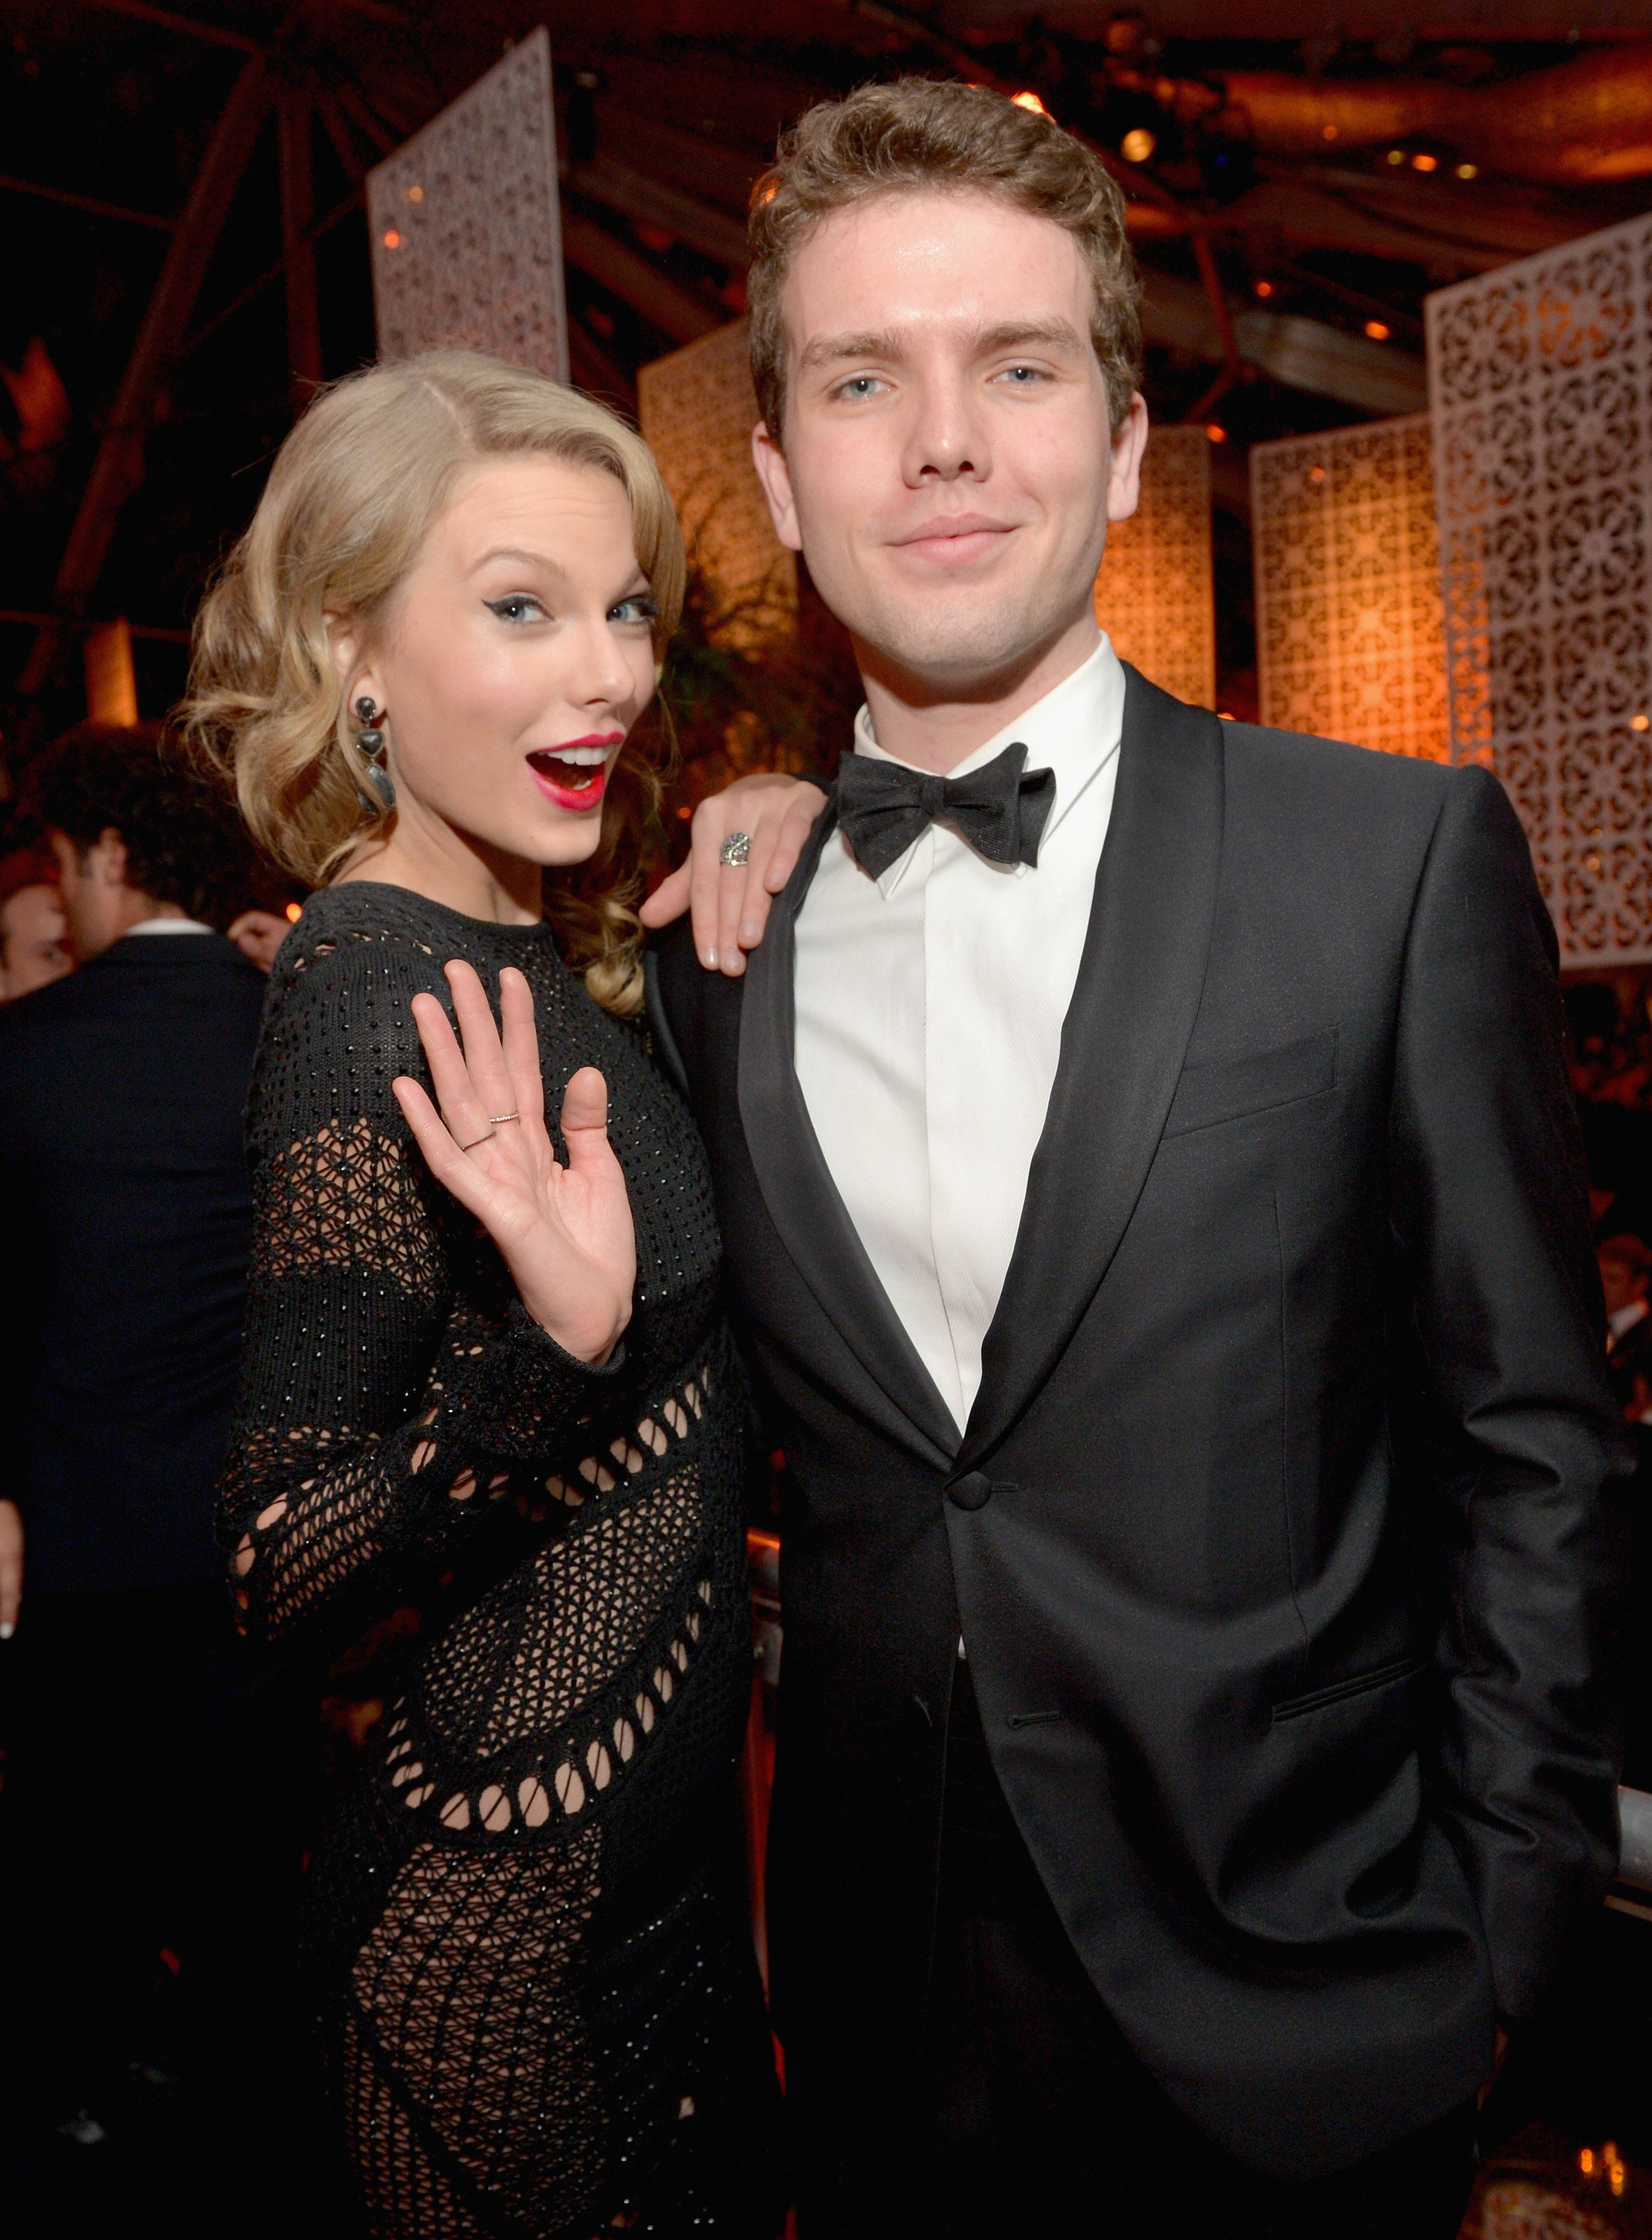 Singer Taylor Swift (L) and Austin Swift at The Beverly Hilton Hotel on Jan. 12, 2014 in Beverly Hills,